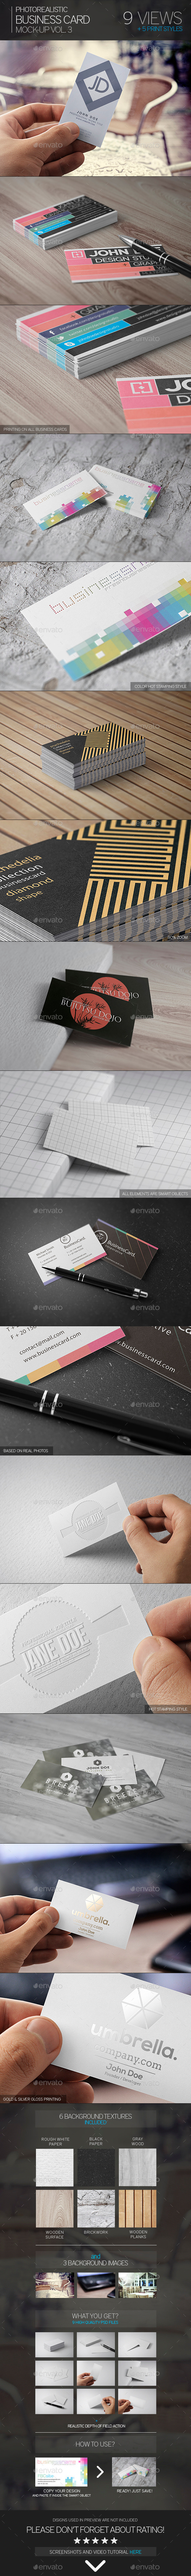 Photorealistic Business Card Mock-Up Vol.3 - Business Cards Print